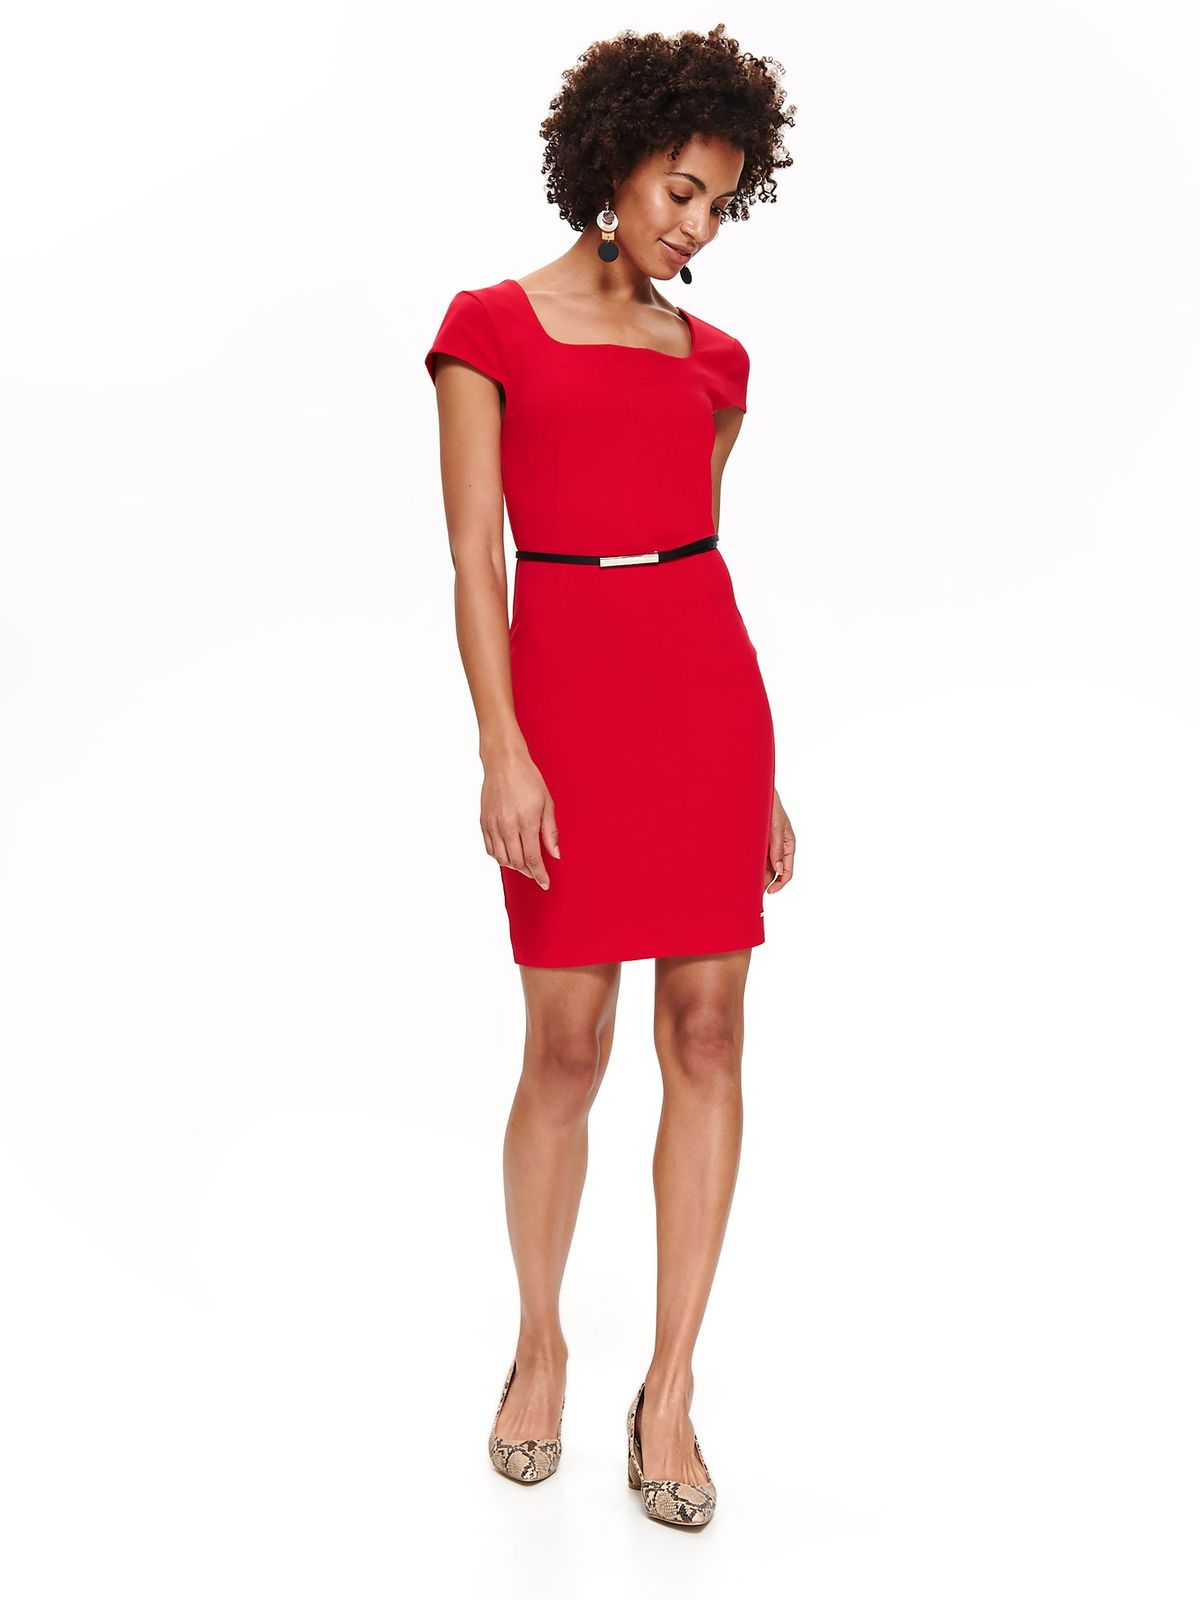 Top Secret red office pencil dress slightly elastic fabric accessorized with belt